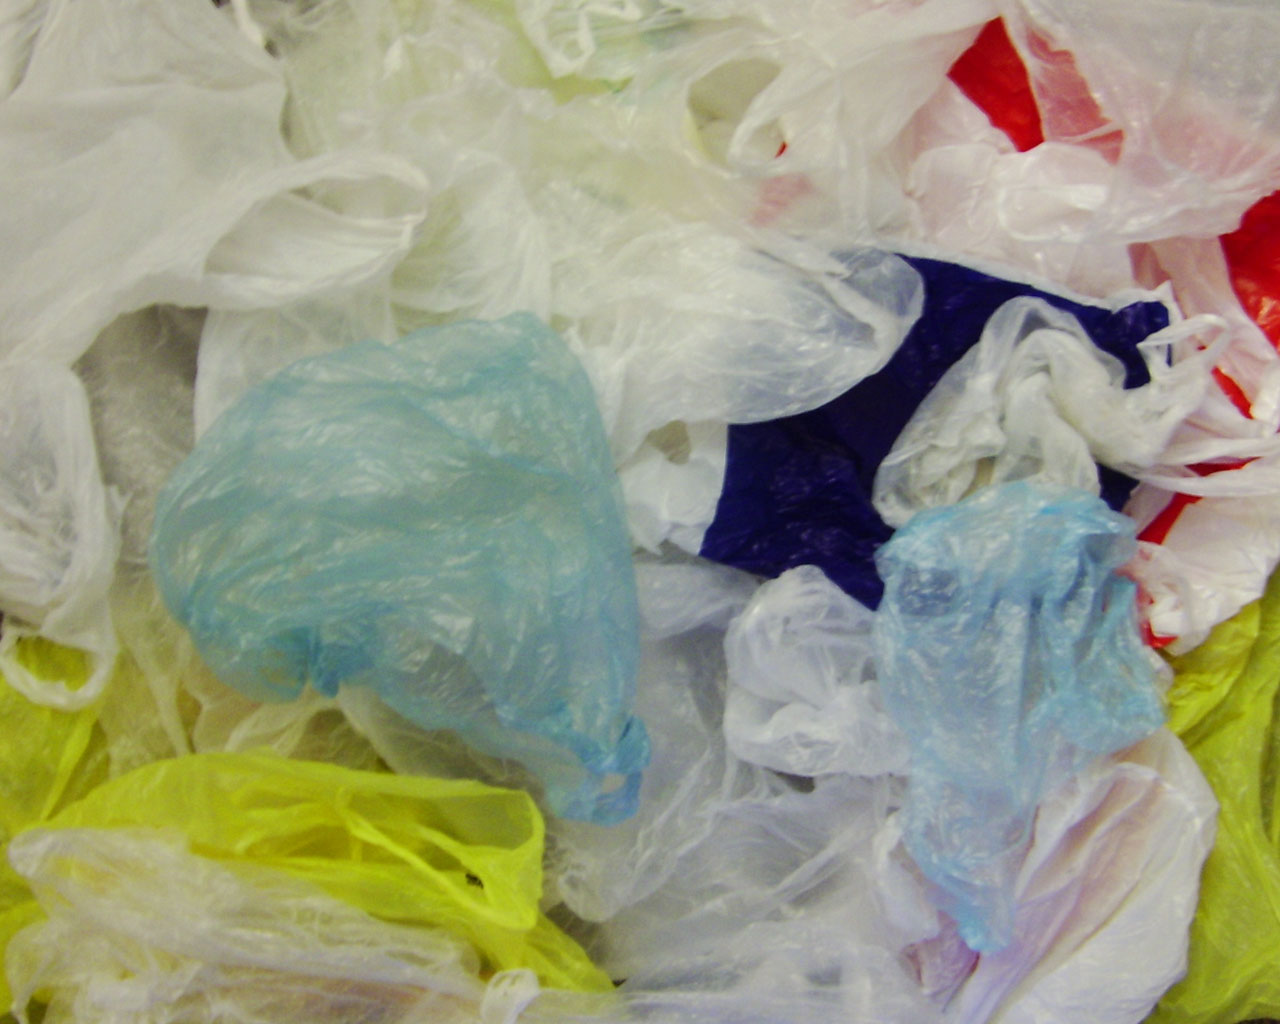 New Jersey Bill Proposes Strictest Plastic Ban In the Nation